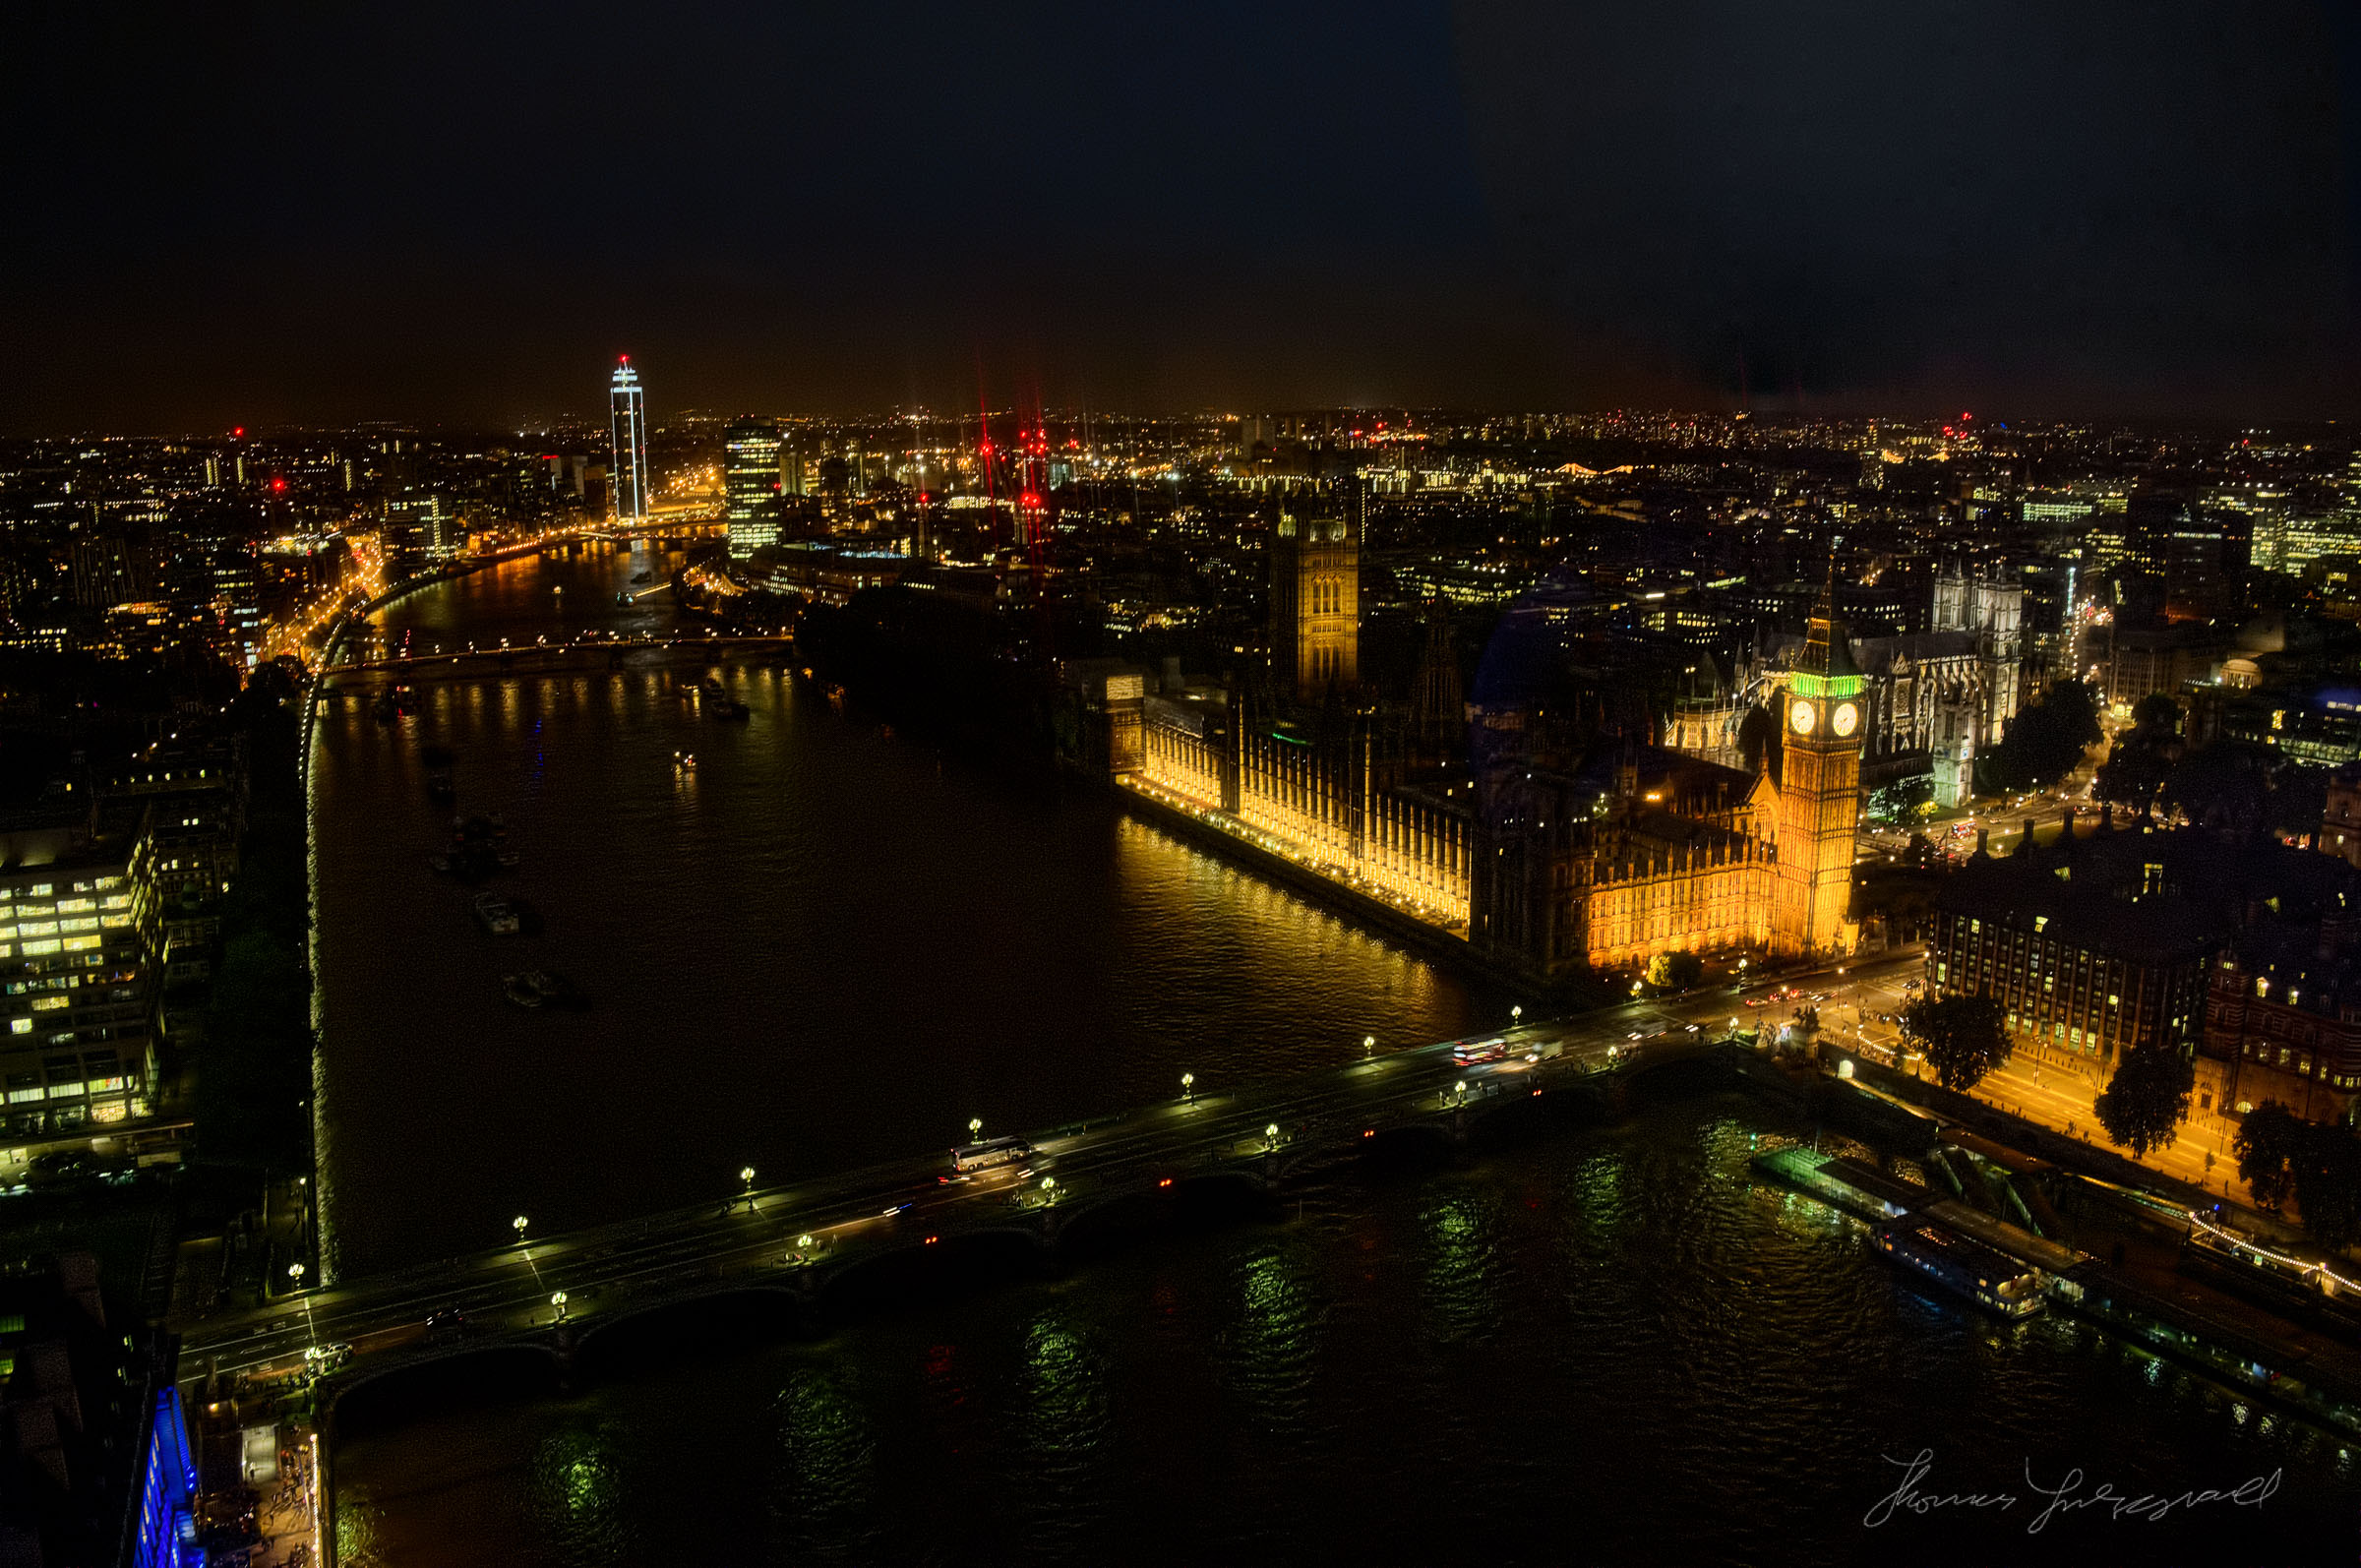 The Thames and Parliament at Night